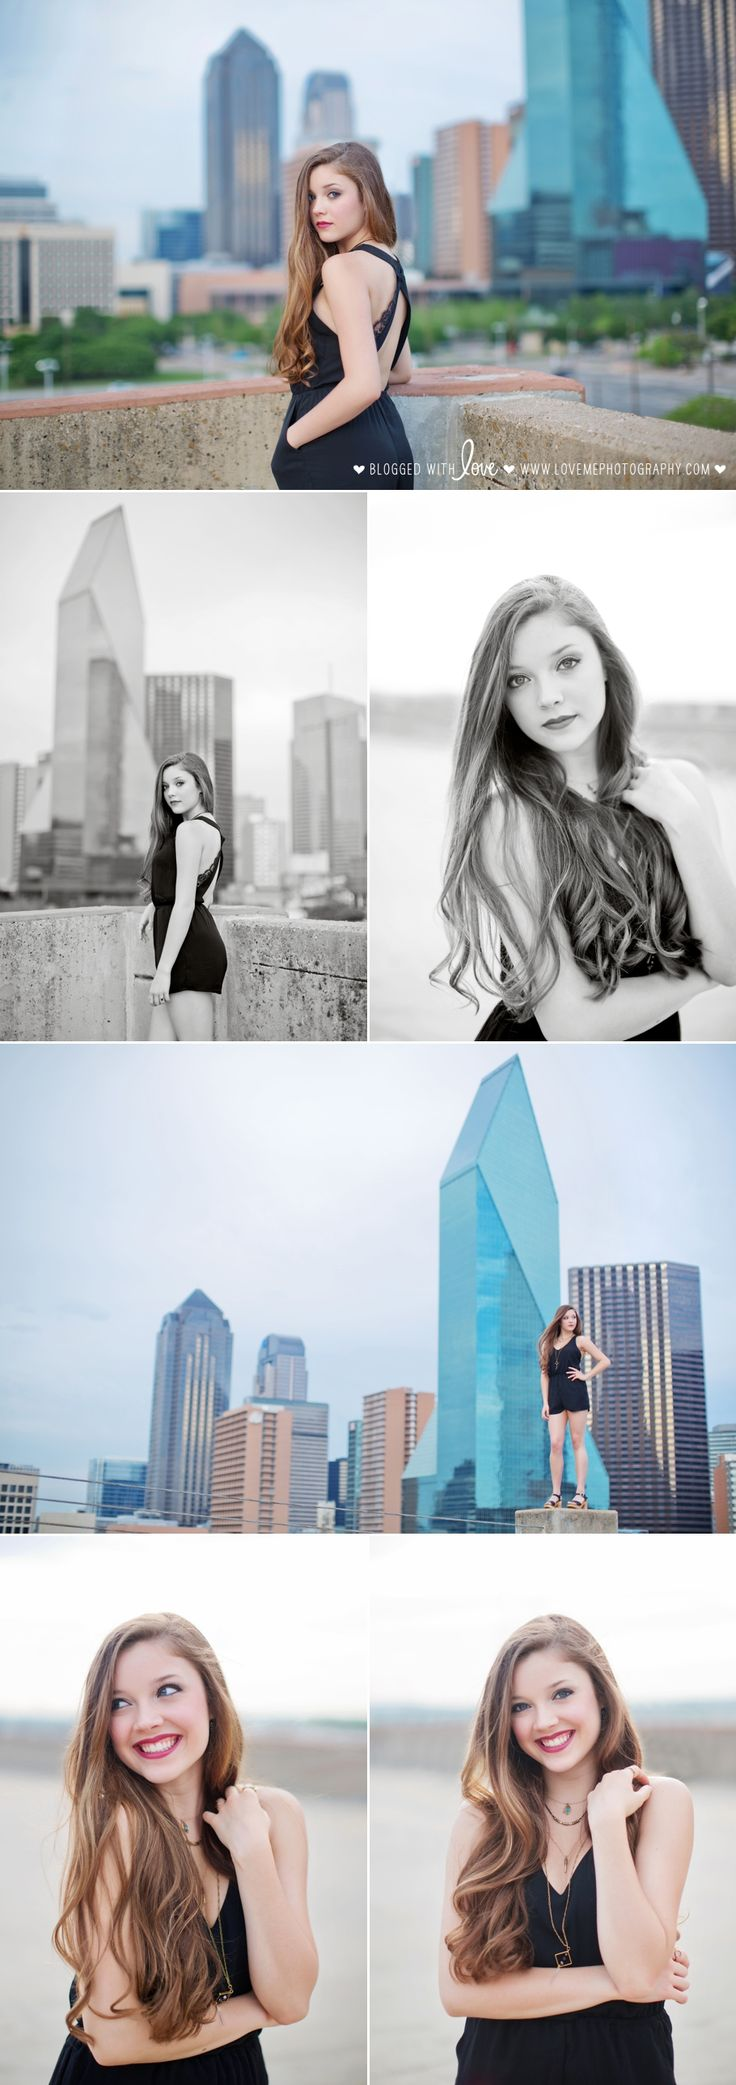 Flashback Friday: Aubrey's senior portrait session in Dallas   Booker T Washington HS of the Visual and Performing Arts   Dallas skyline   copyright Love, Me Photography www.lovemephotography.com